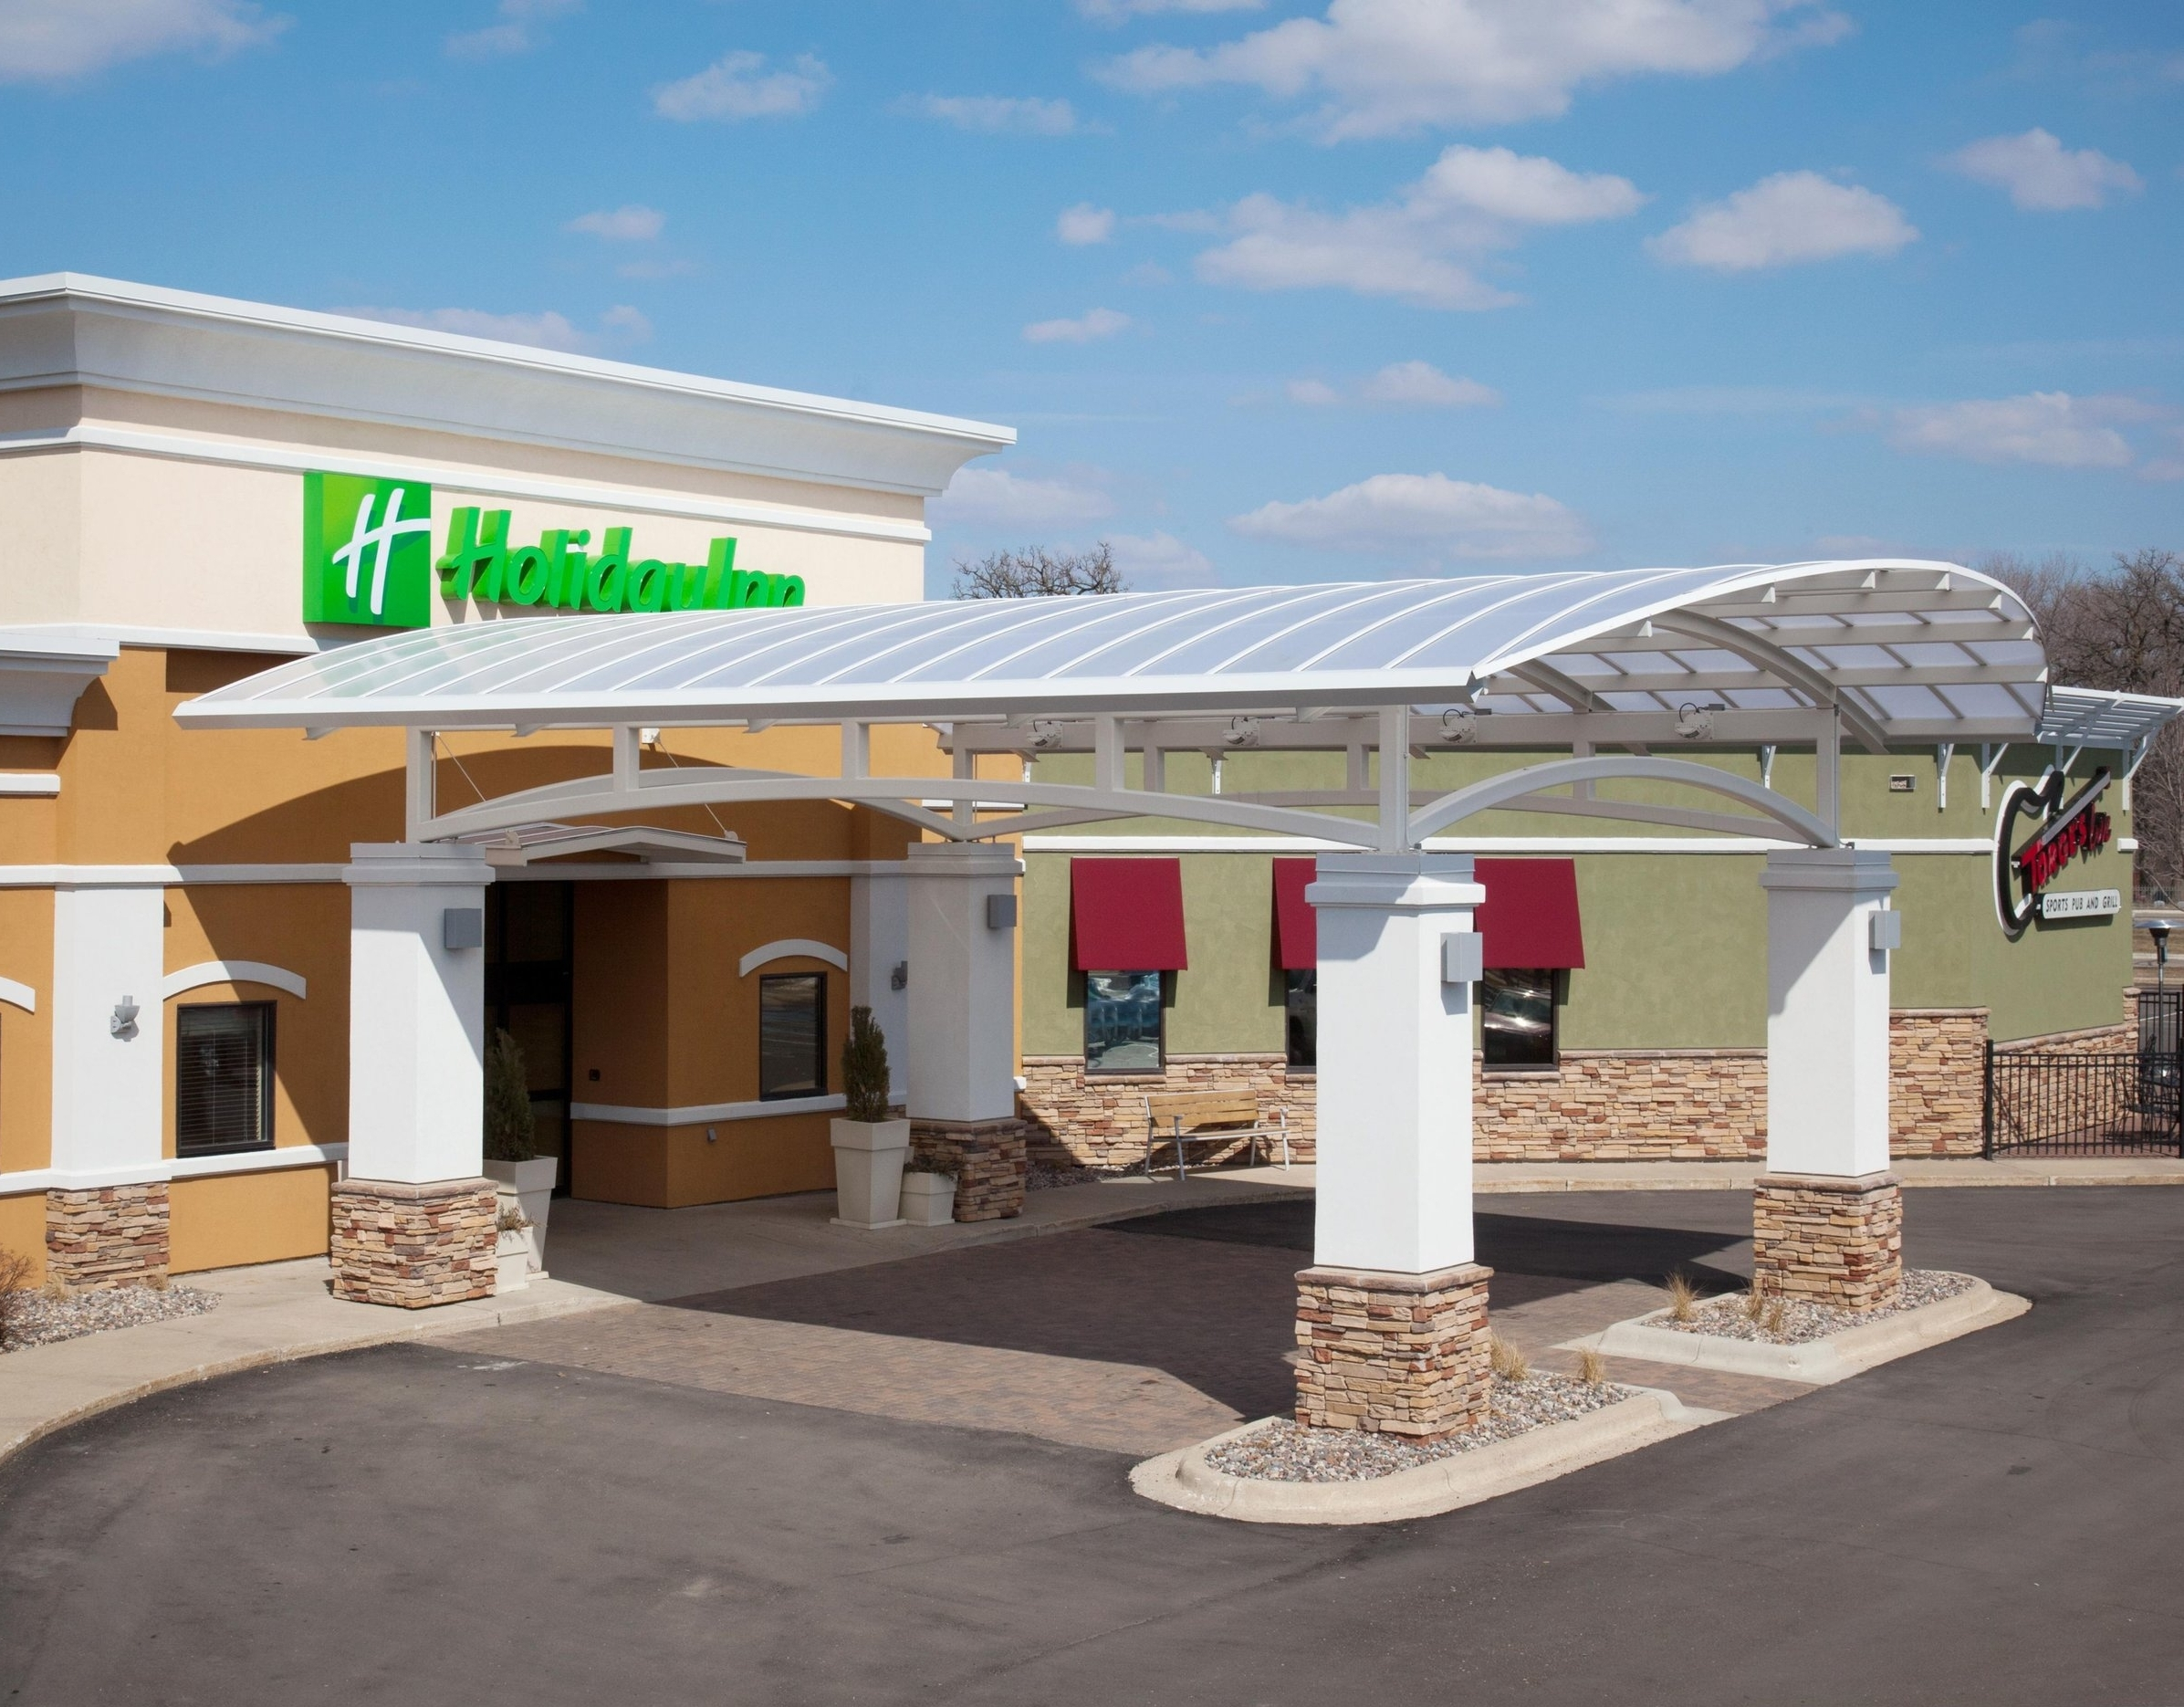 Holiday Inn Austin Conference Center   1701 4th Street NW  Austin, MN 55912  1-507-433-1000   Book Online